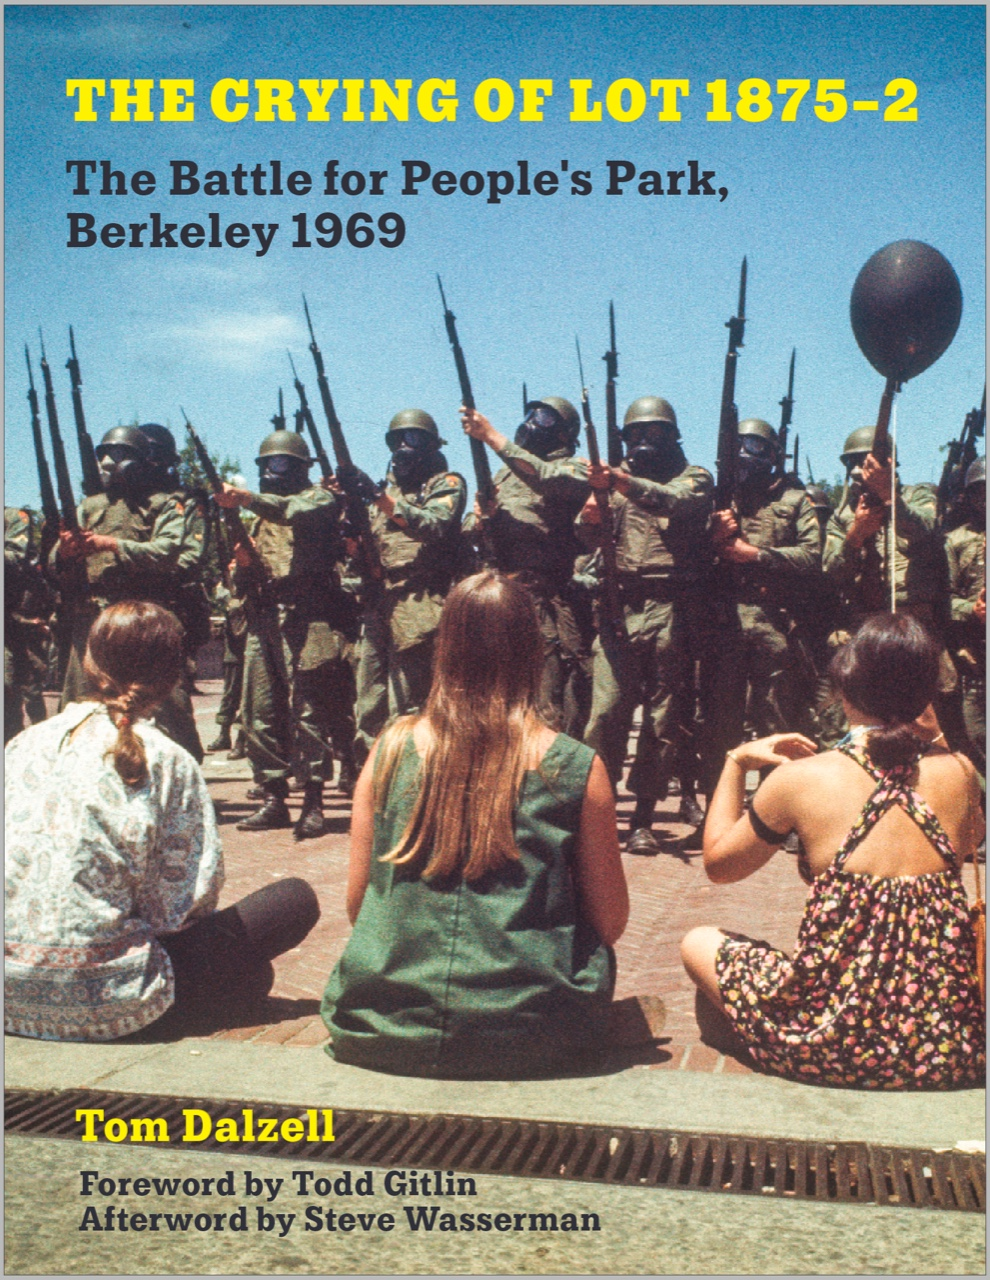 The Crying of Lot 1875-2, The Battle for People's Park, Berkeley 1969